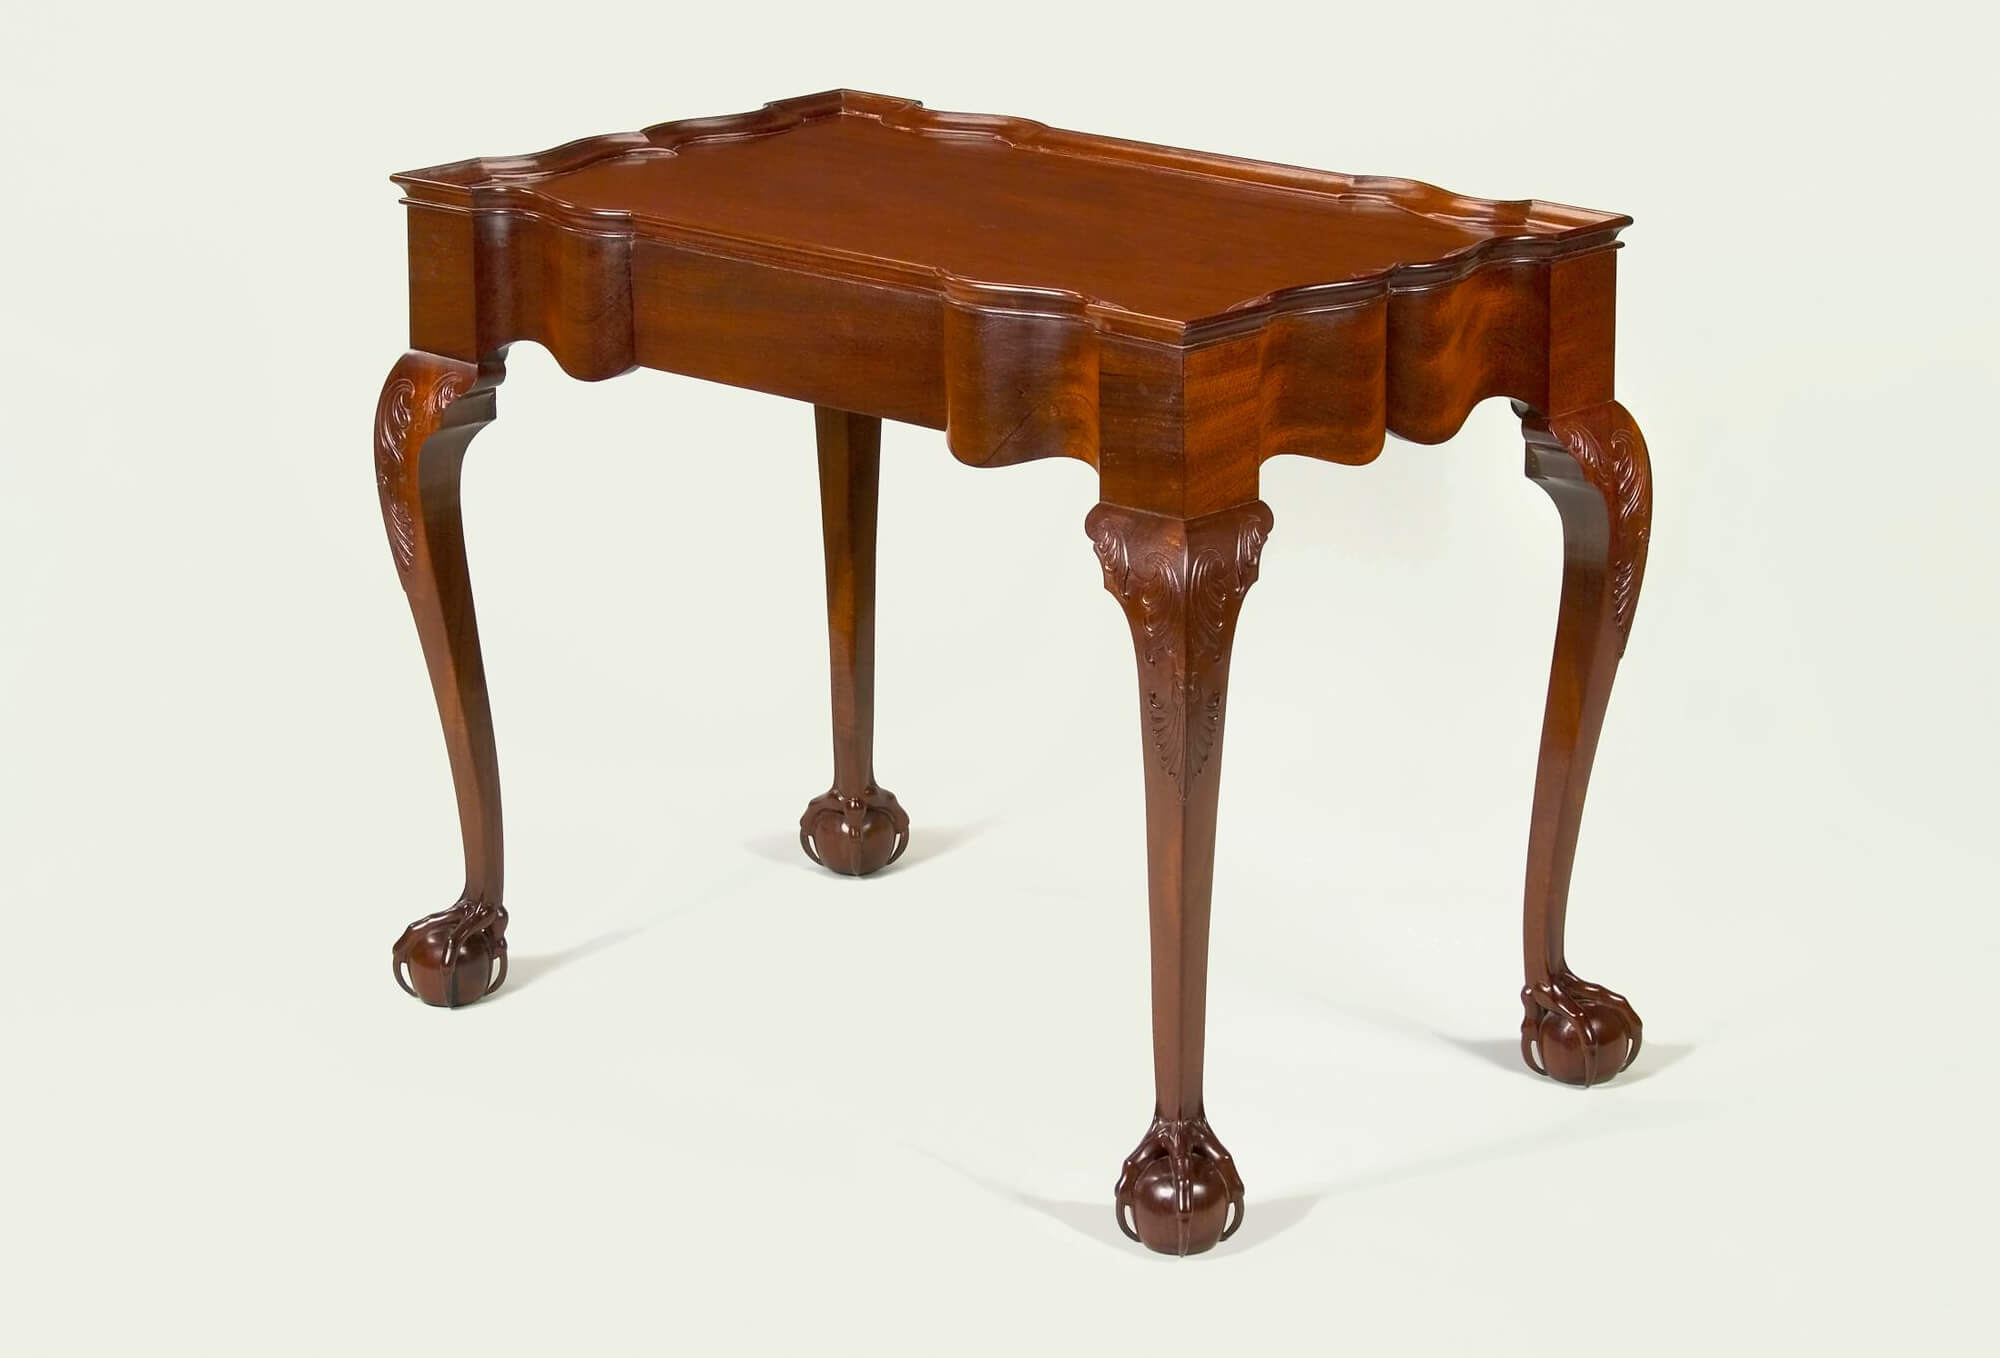 Newport Goddard Tea Table